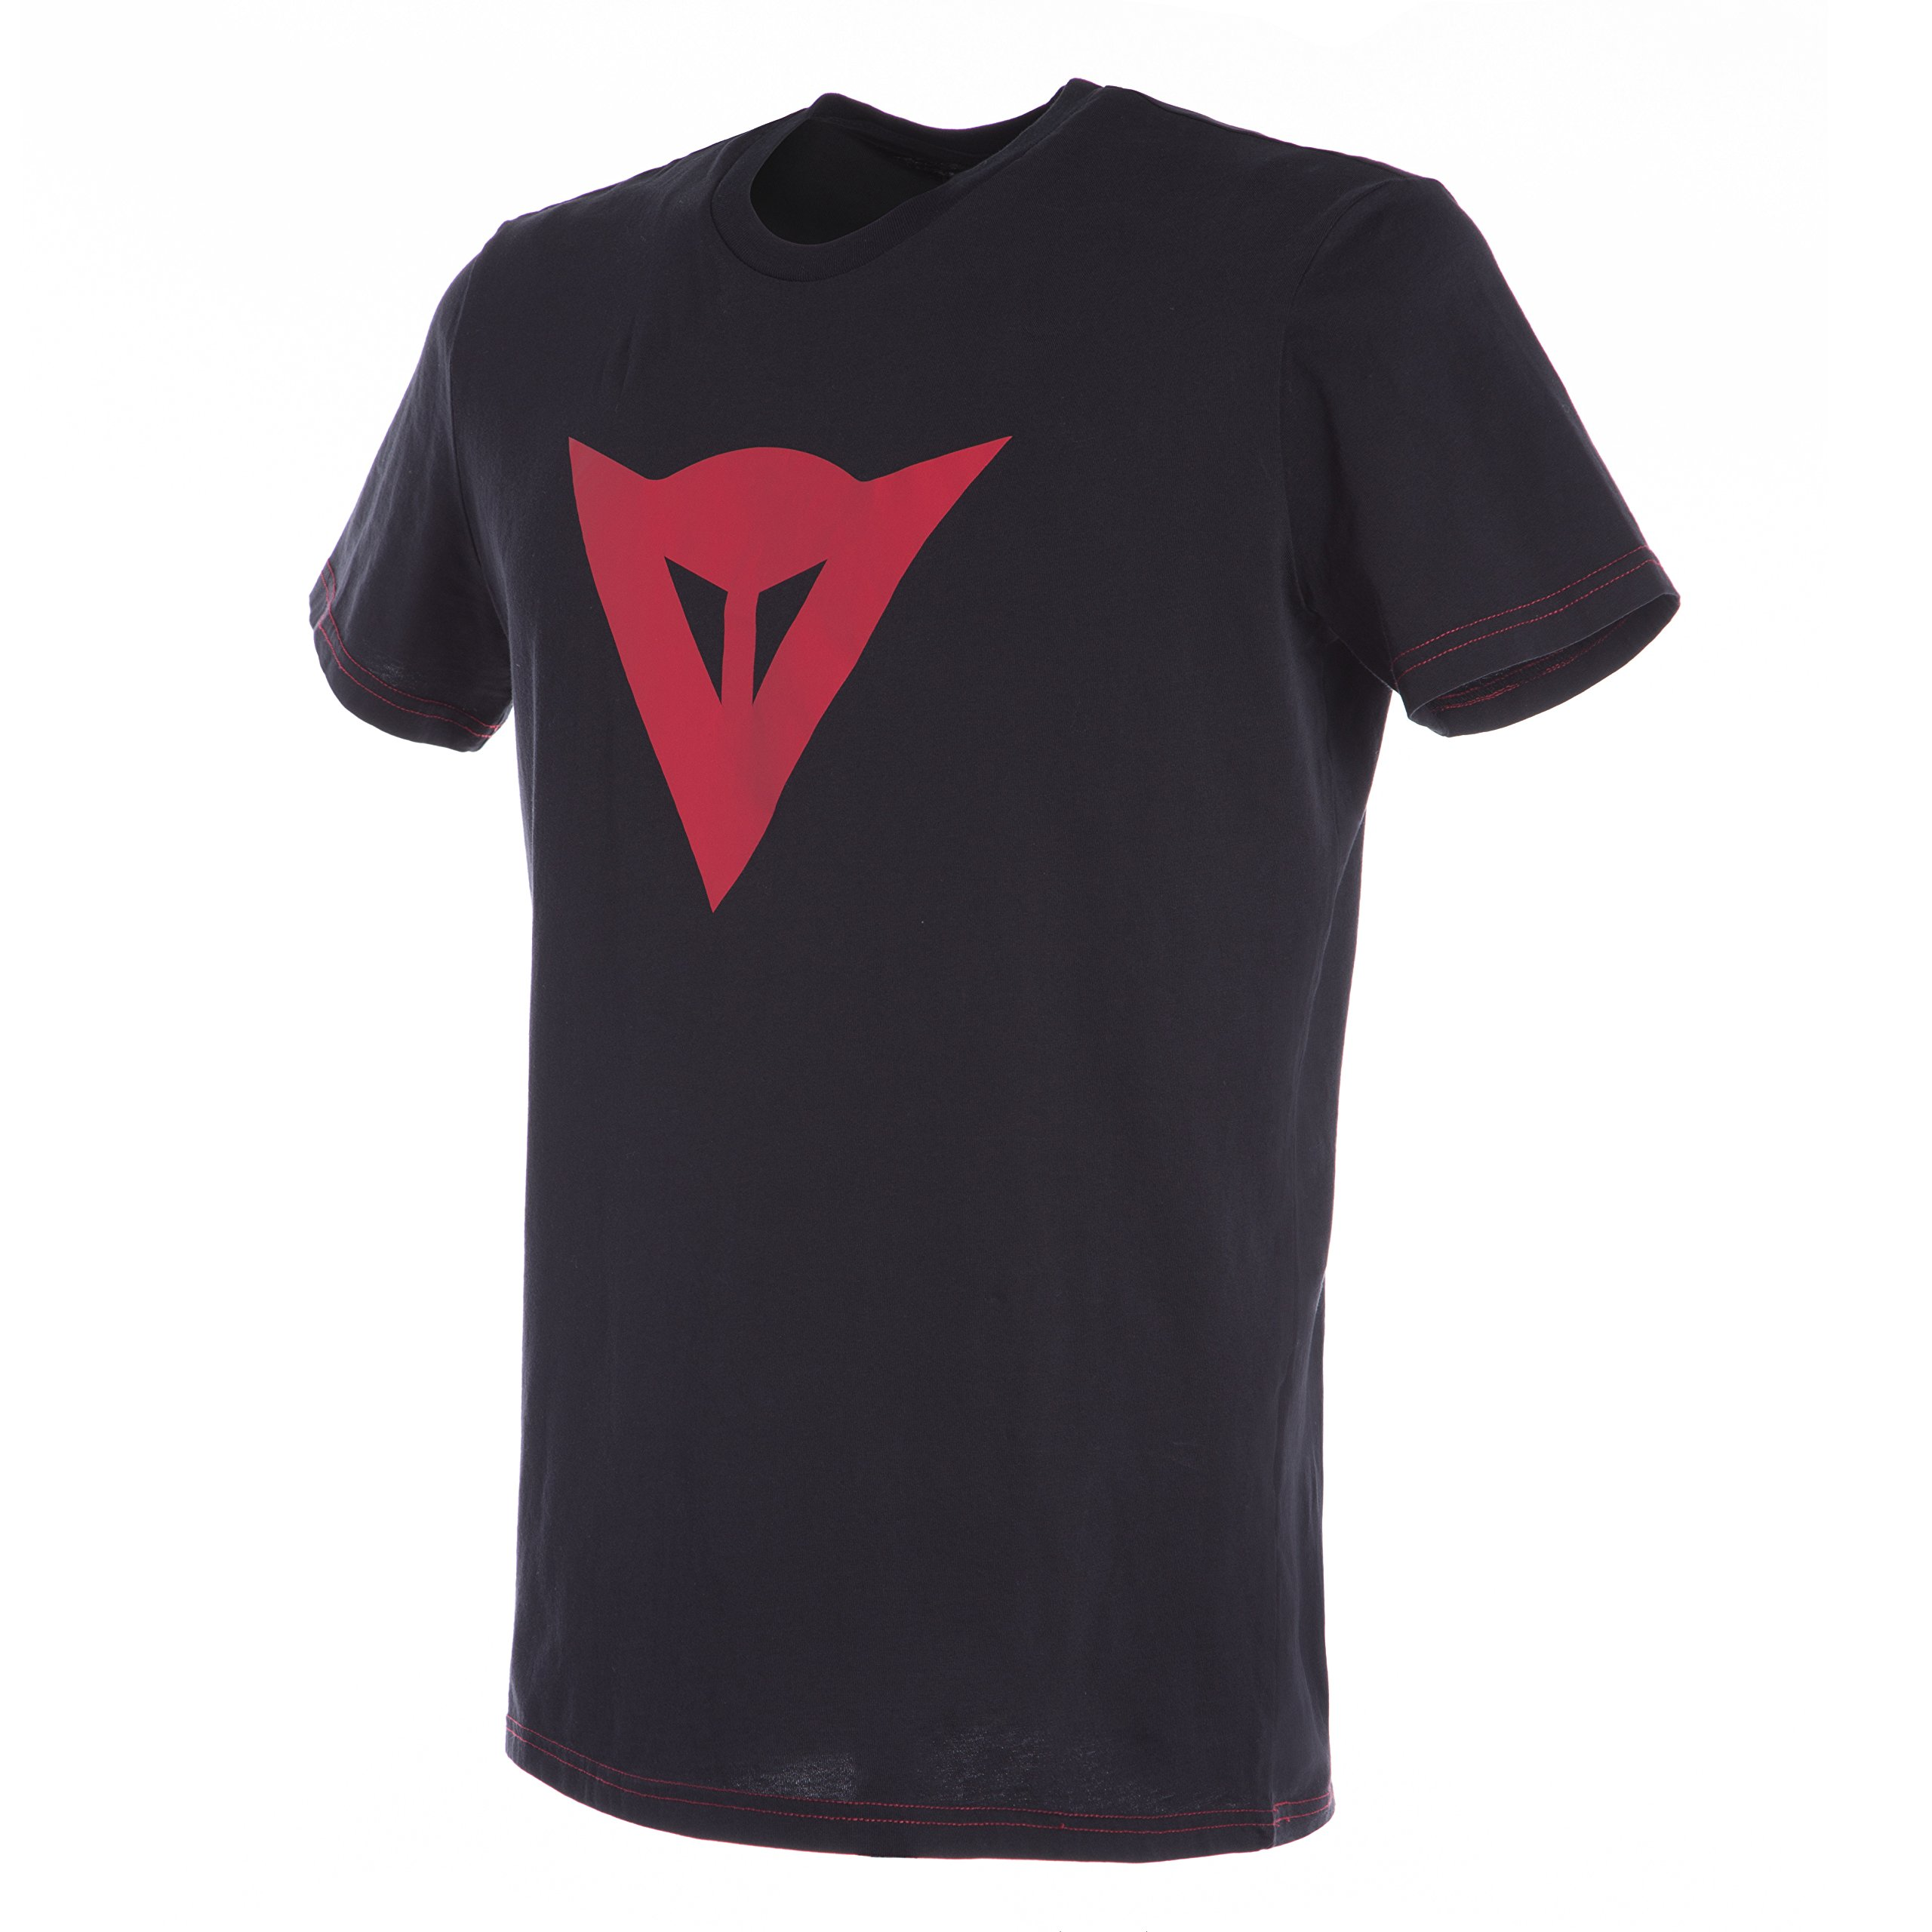 Dainese Men'S Speed Demon T-Shirt Black L by Dainese